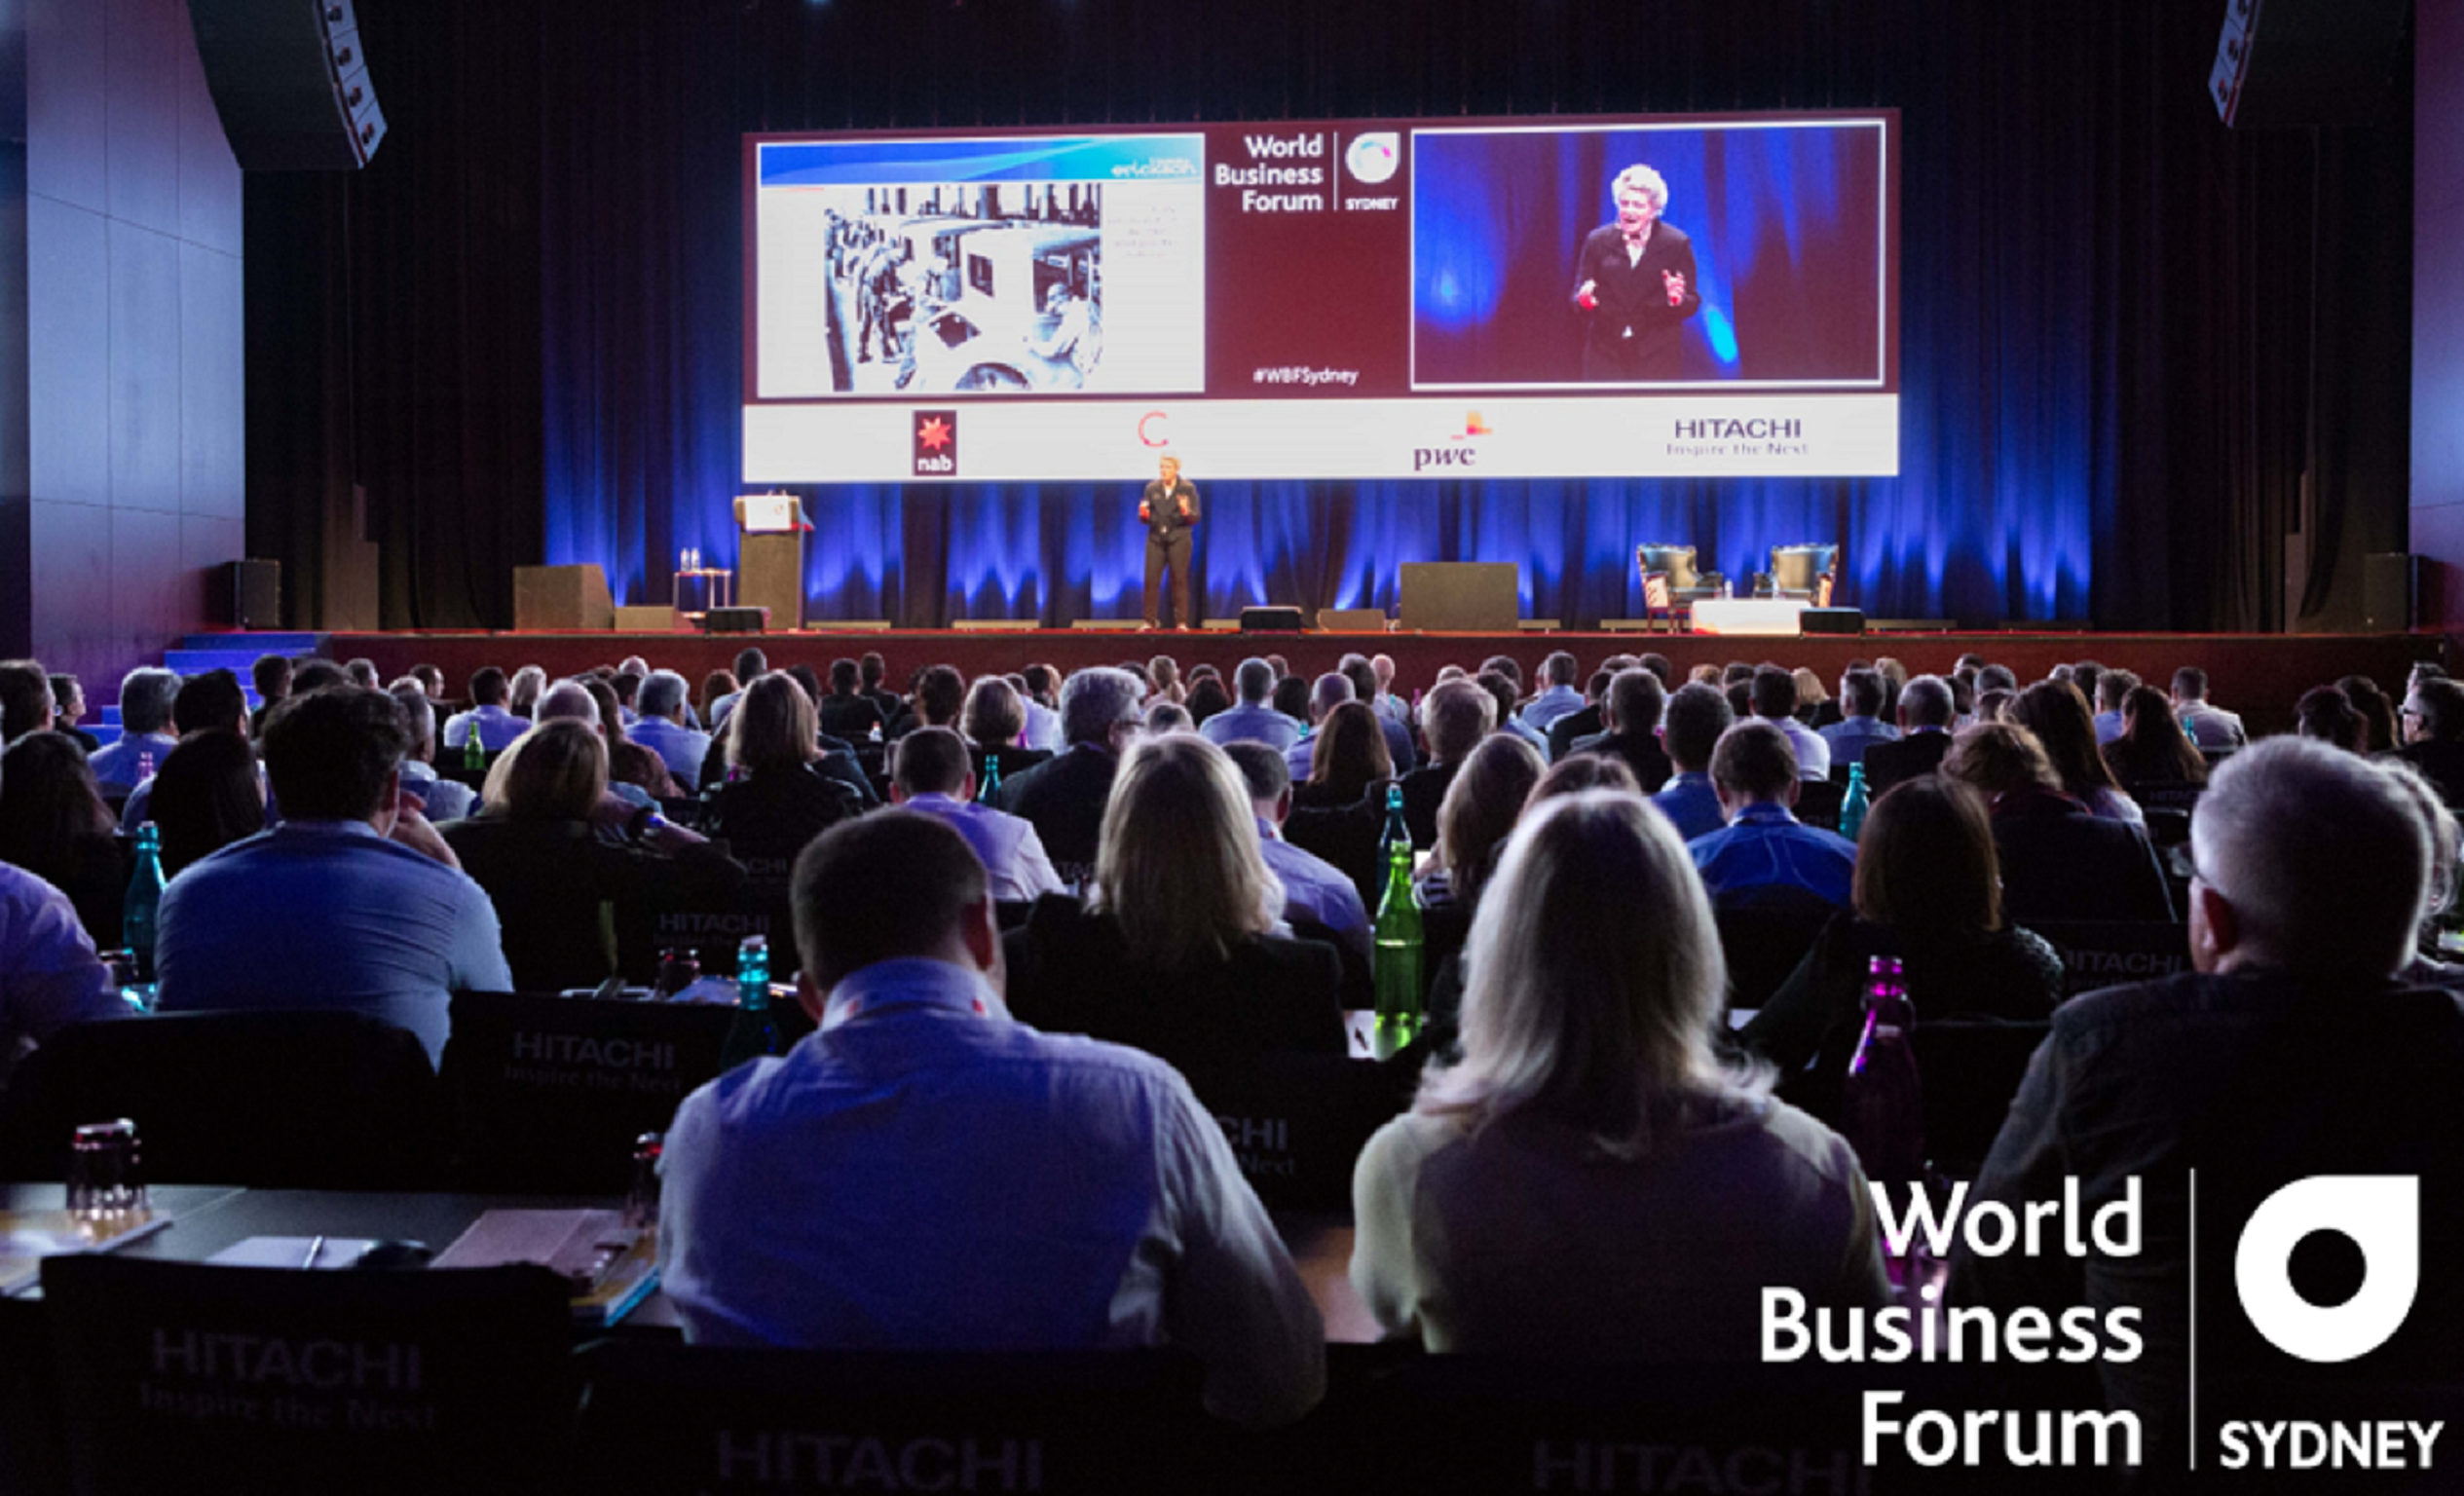 World Business Forum Sydney 2017